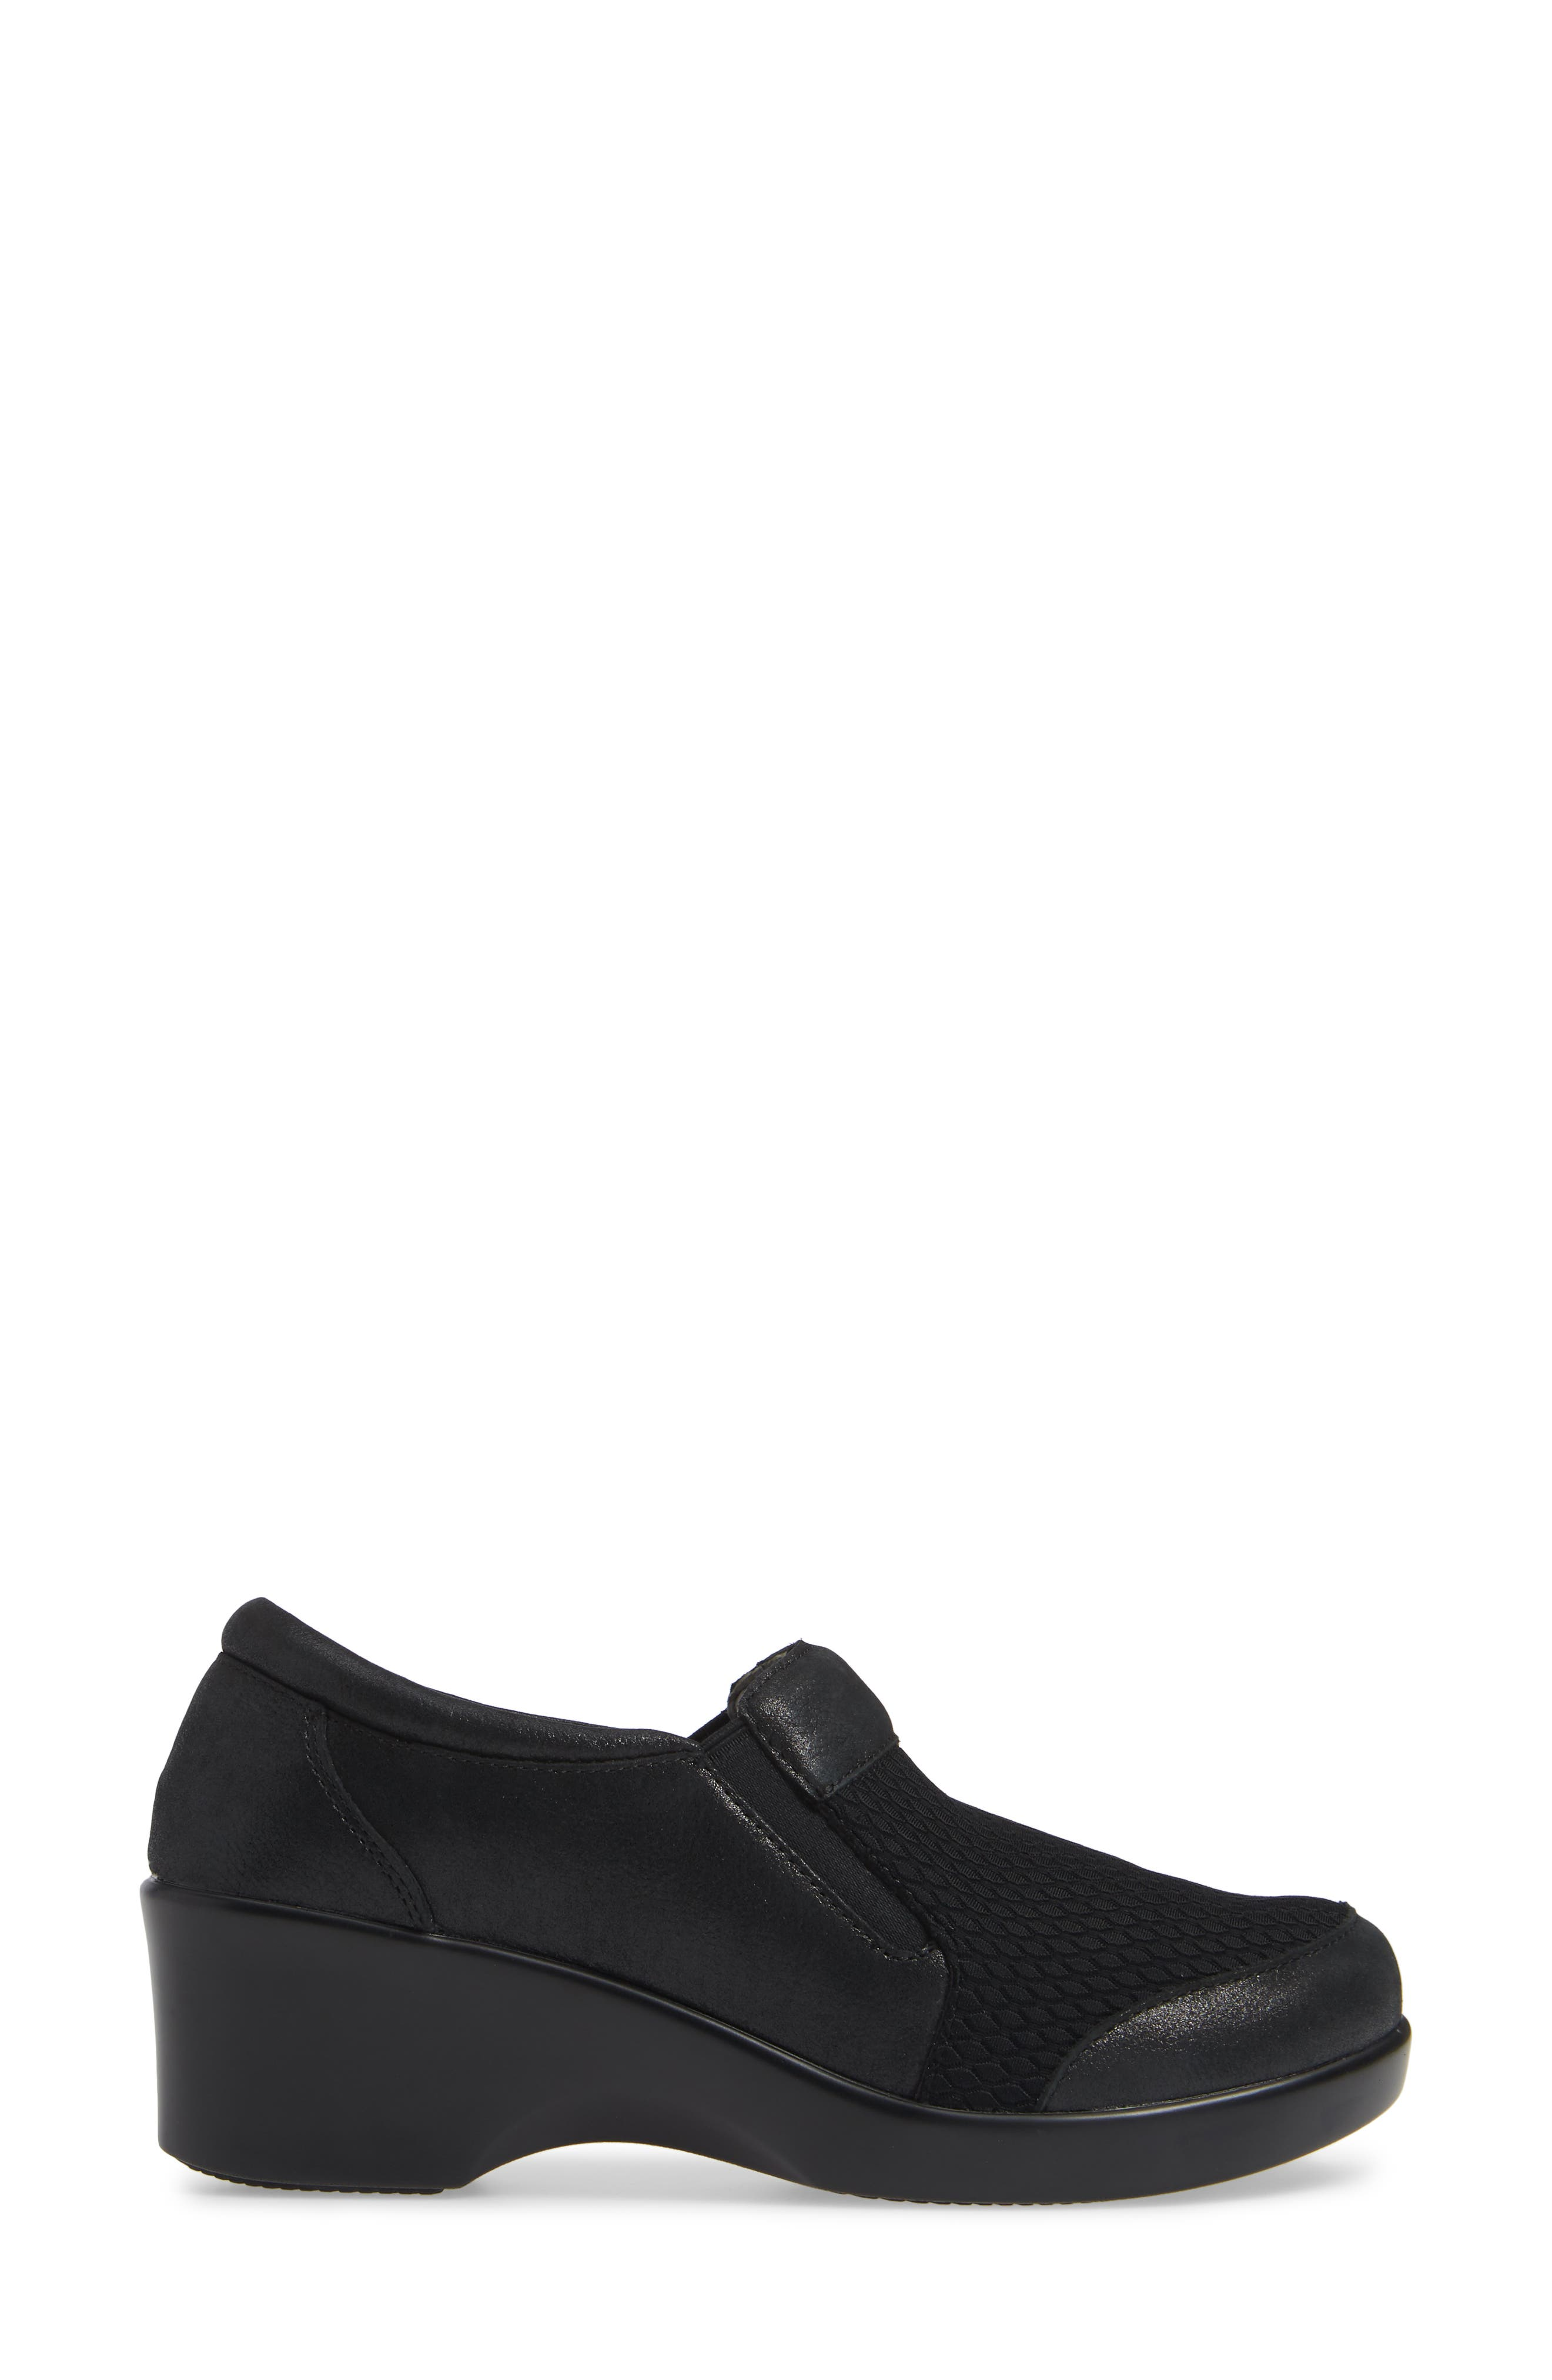 Eryn Pump,                             Alternate thumbnail 3, color,                             ANISE BABY TUMBLE LEATHER